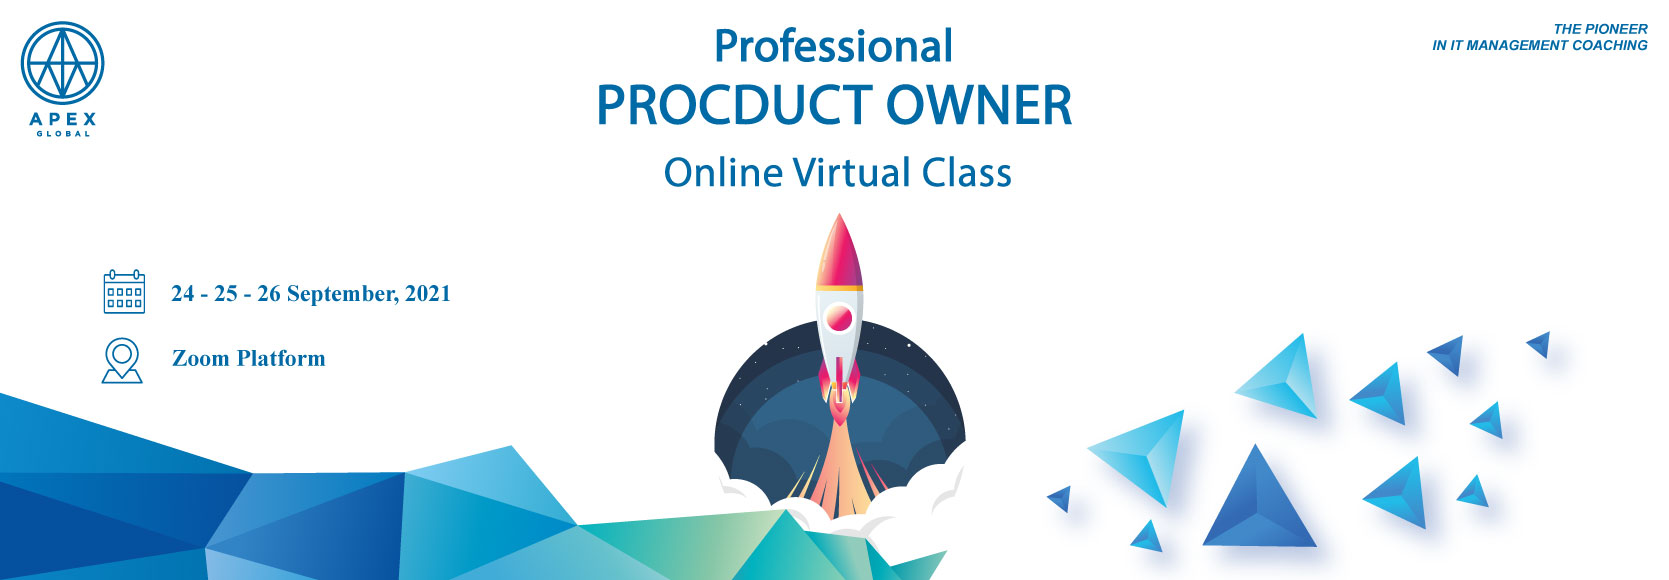 Professional-Product-Owner-Online-Virtual-Class